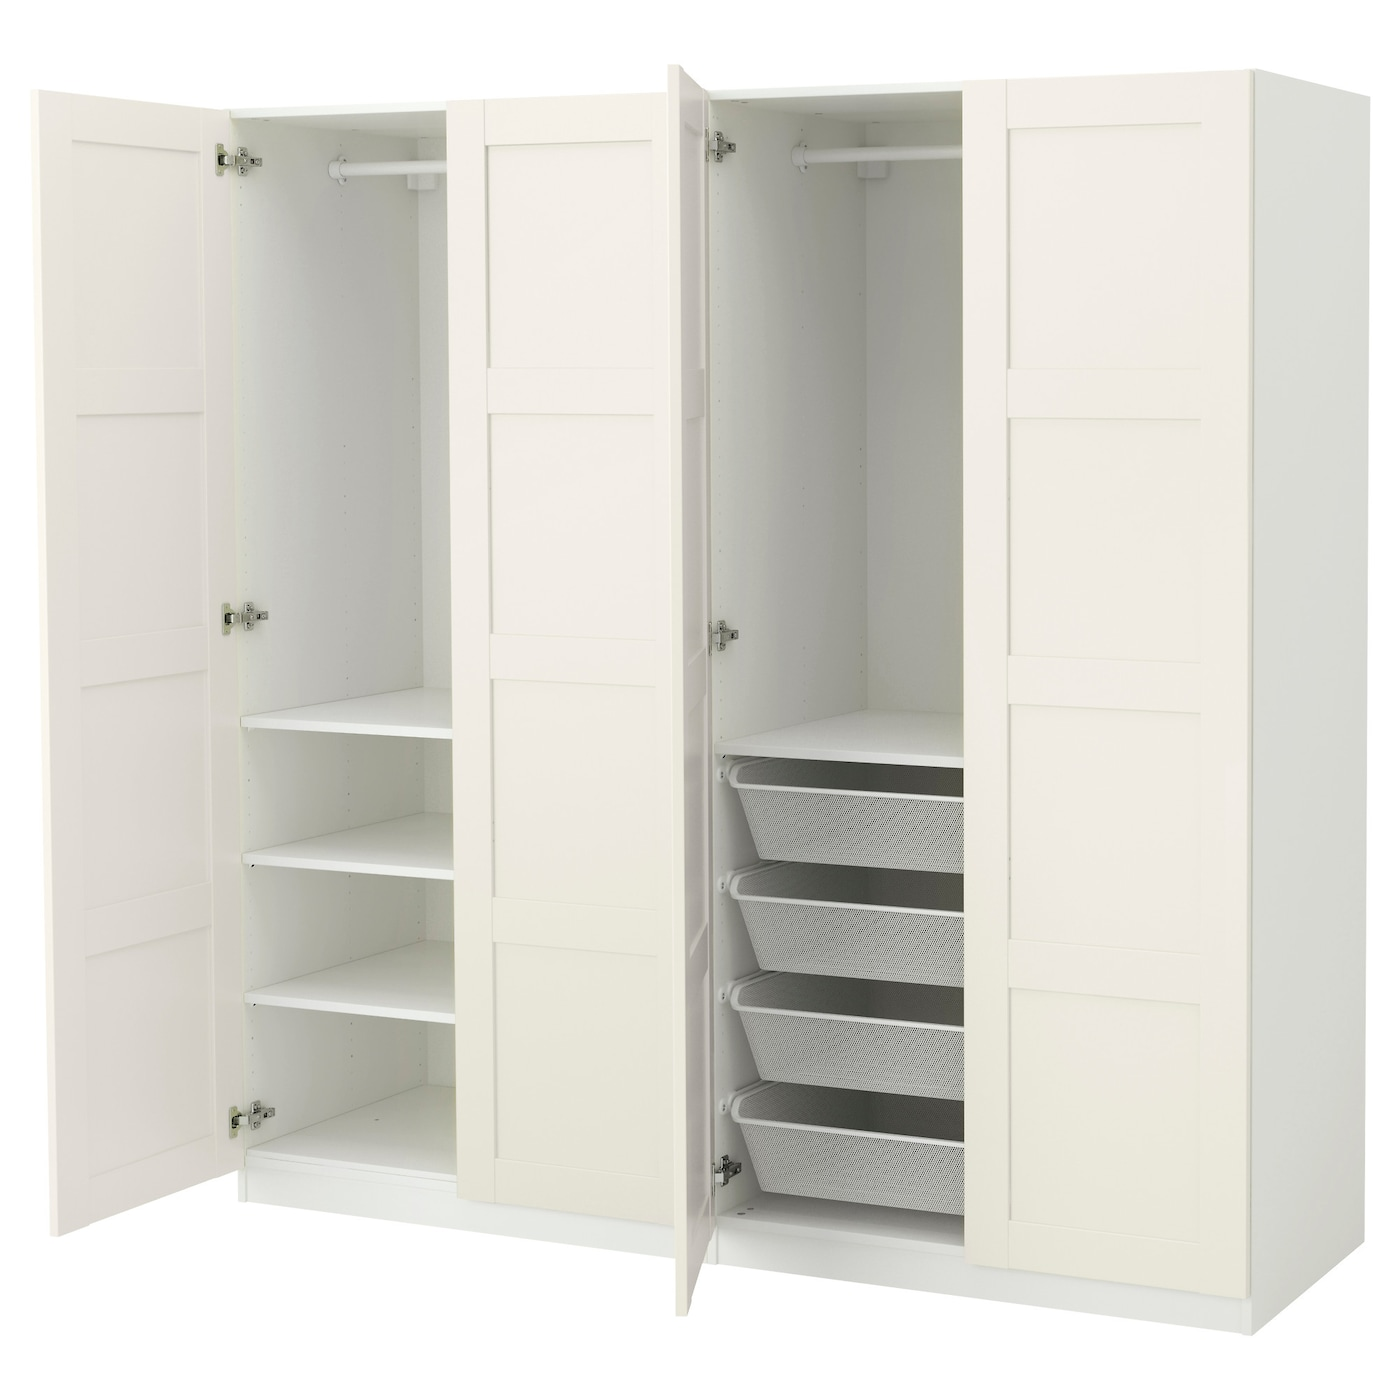 IKEA PAX wardrobe 10 year guarantee. Read about the terms in the ...